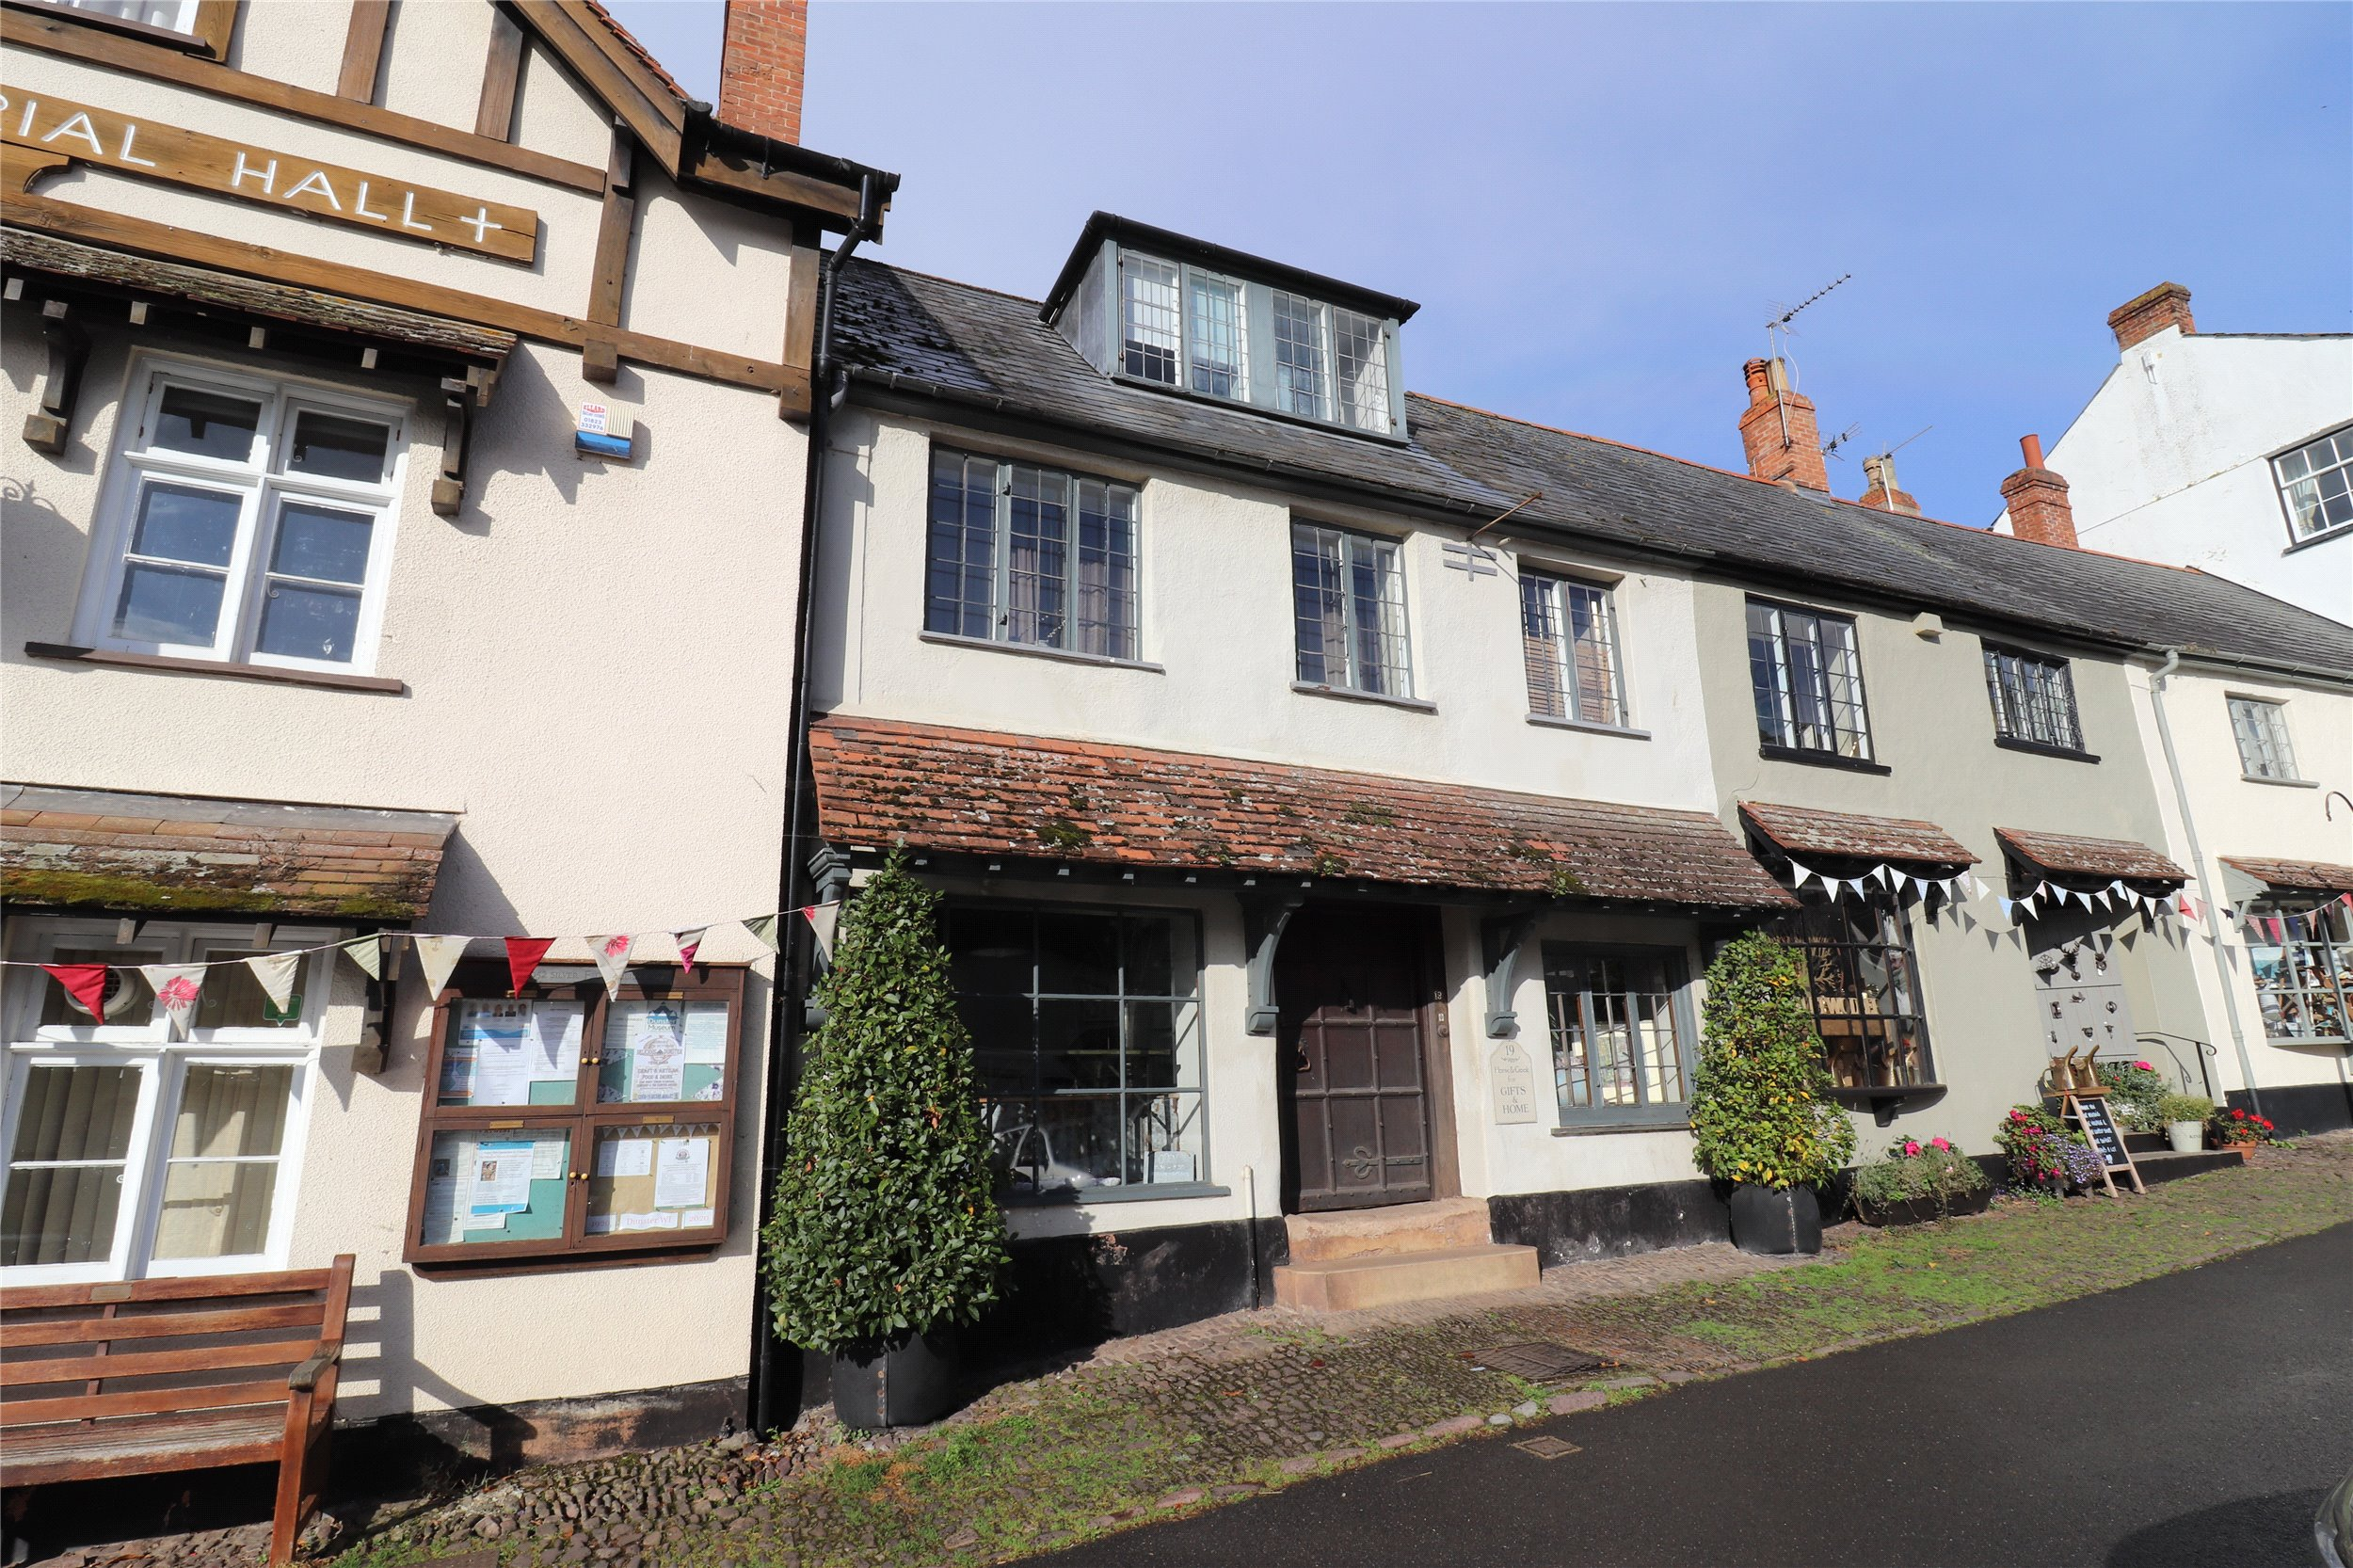 Horse and Crook Dunster